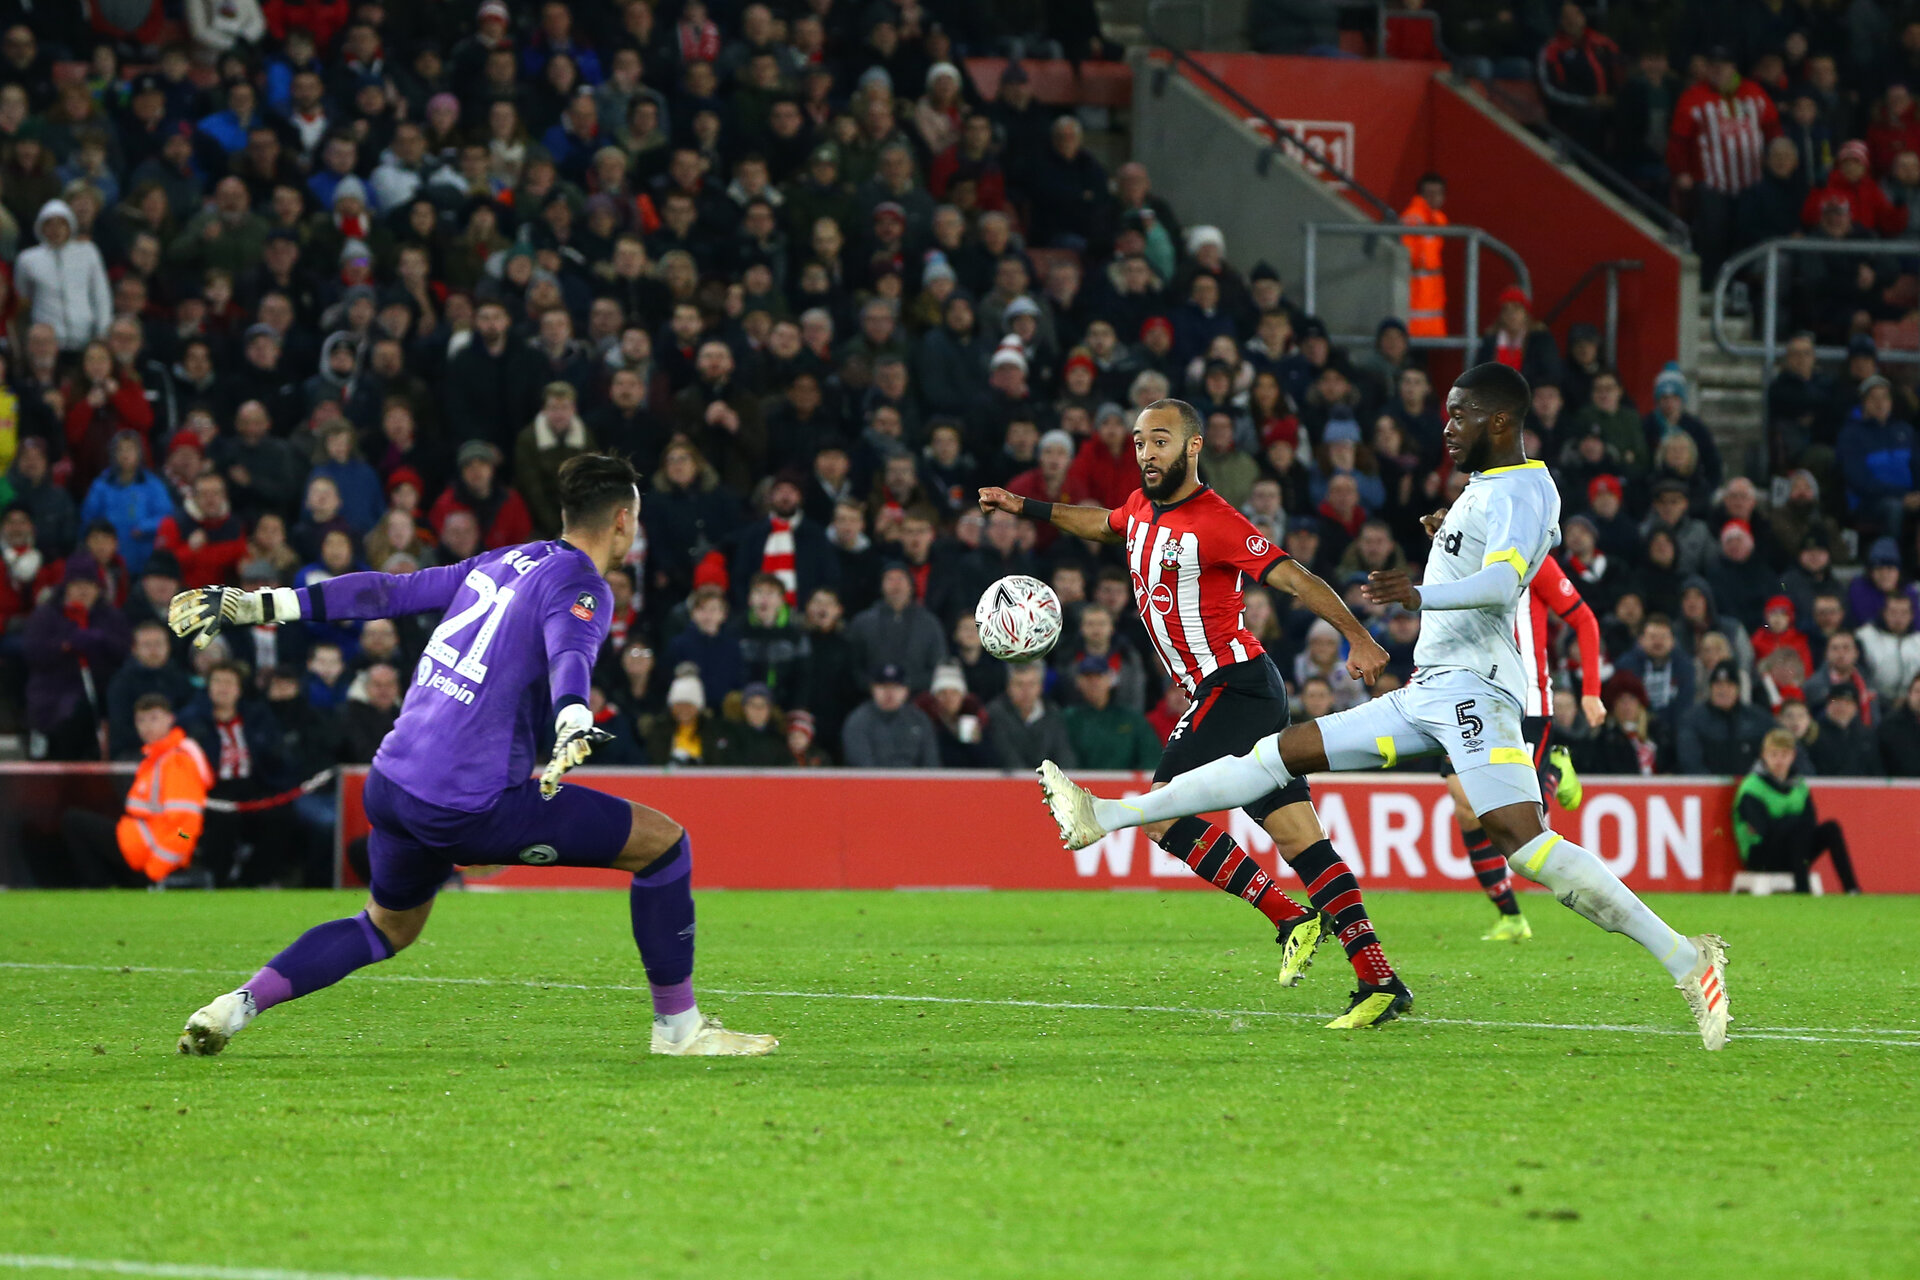 SOUTHAMPTON, ENGLAND - JANUARY 16:  Nathan Redmond (middle) of Southampton FC scores by chipping the ball over Derby County's Kelle Roos (left) during the FA Cup Third Round Replay match between Southampton FC and Derby County at St Mary's Stadium on January 16, 2019 in Southampton, United Kingdom. (Photo by James Bridle - Southampton FC/Southampton FC via Getty Images)